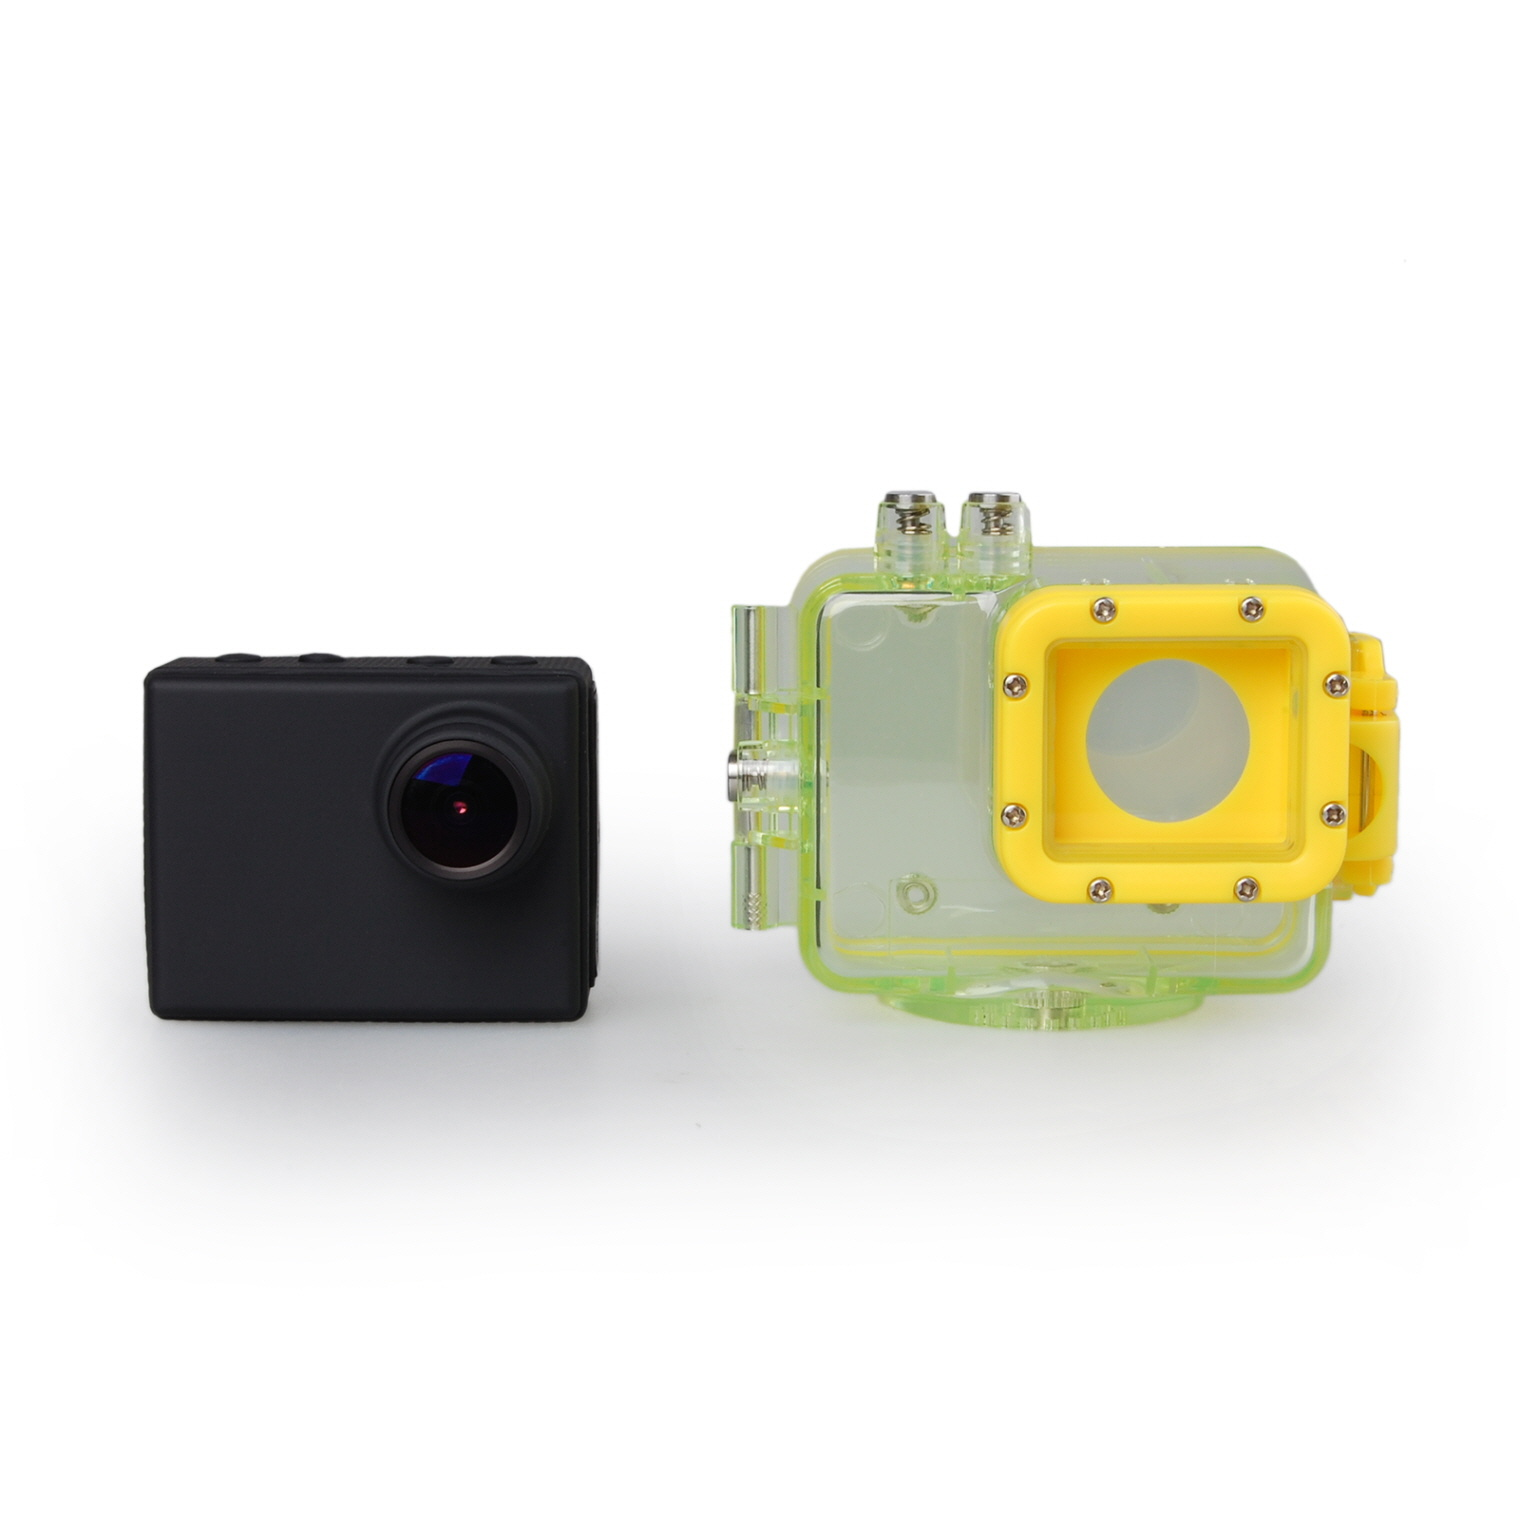 Better Than Gopro Camera Full HD 1080P Excam-04